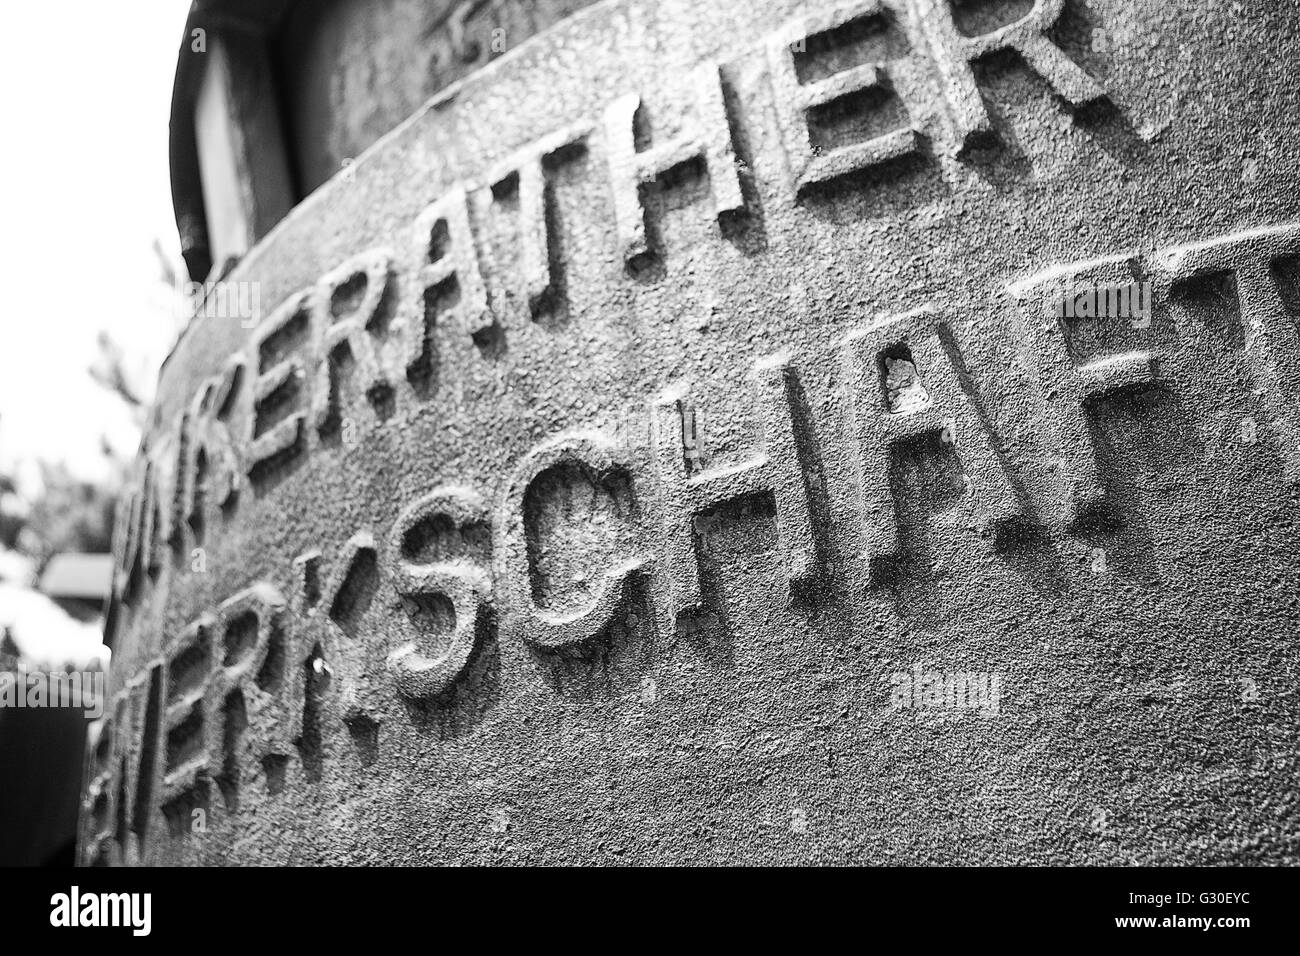 Closeup of the smelting tank with large letters. - Stock Image